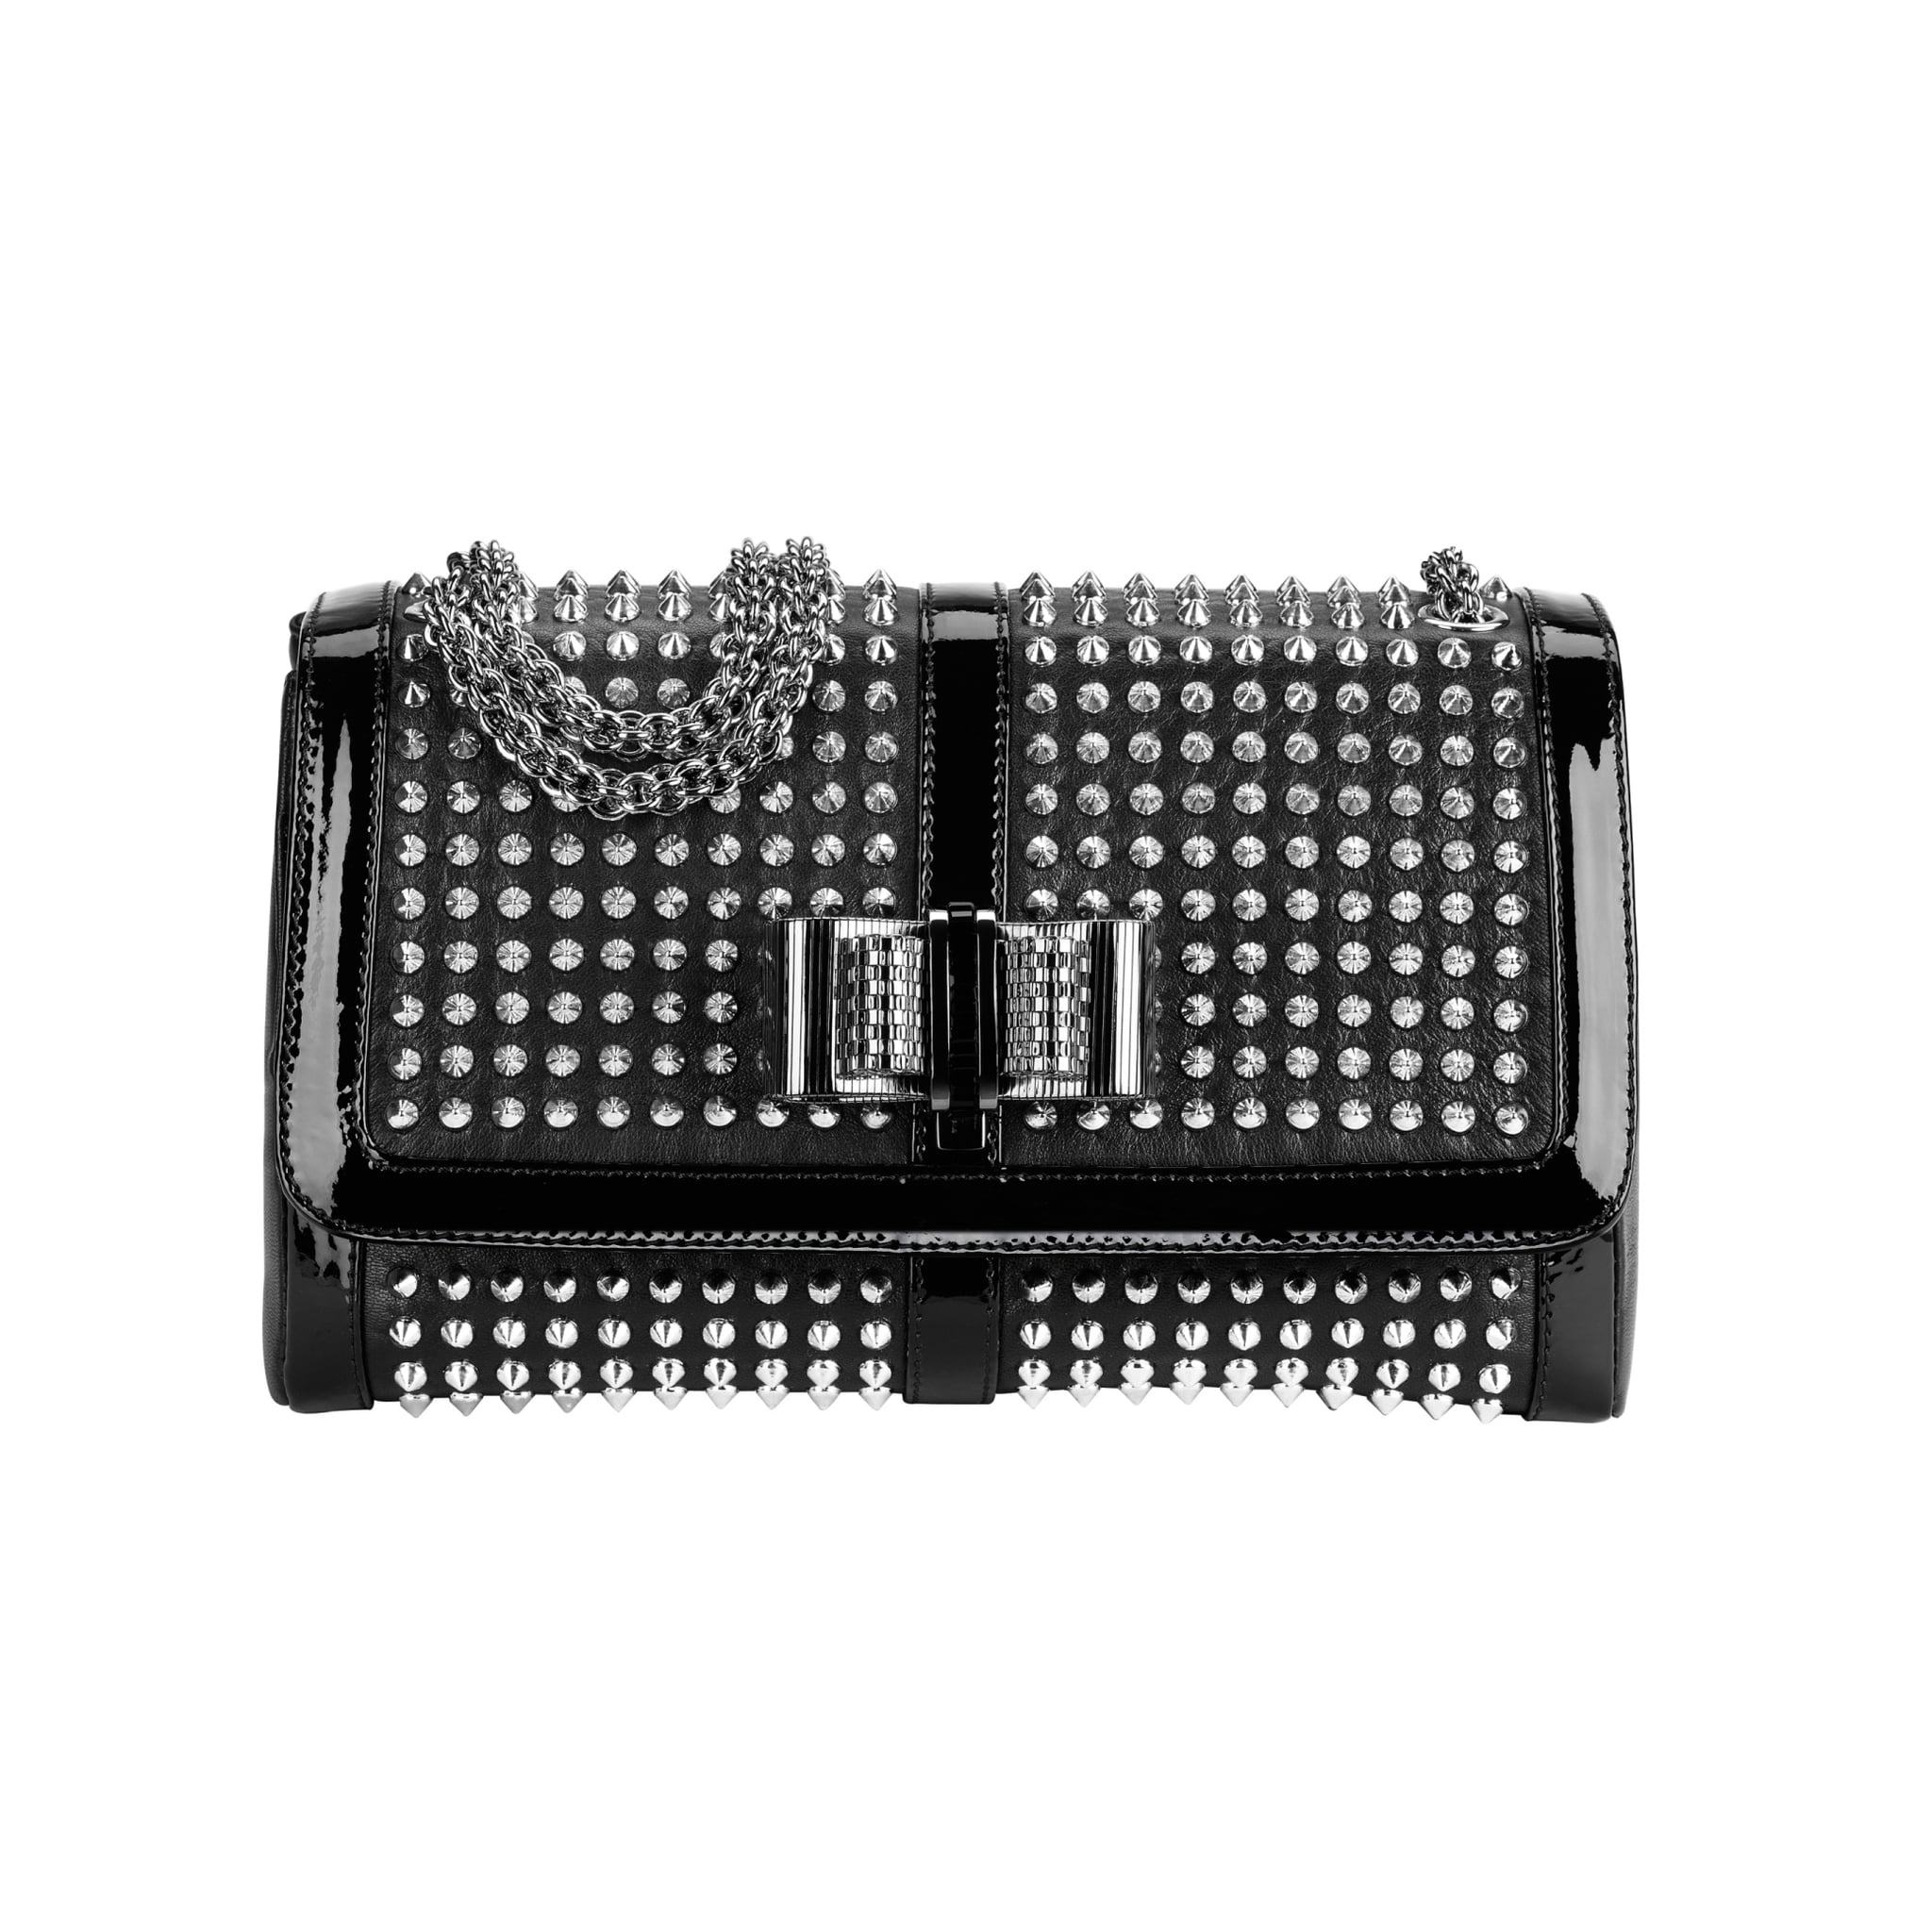 Sweet Charity small Spikes bag in nappa/patent, $2295